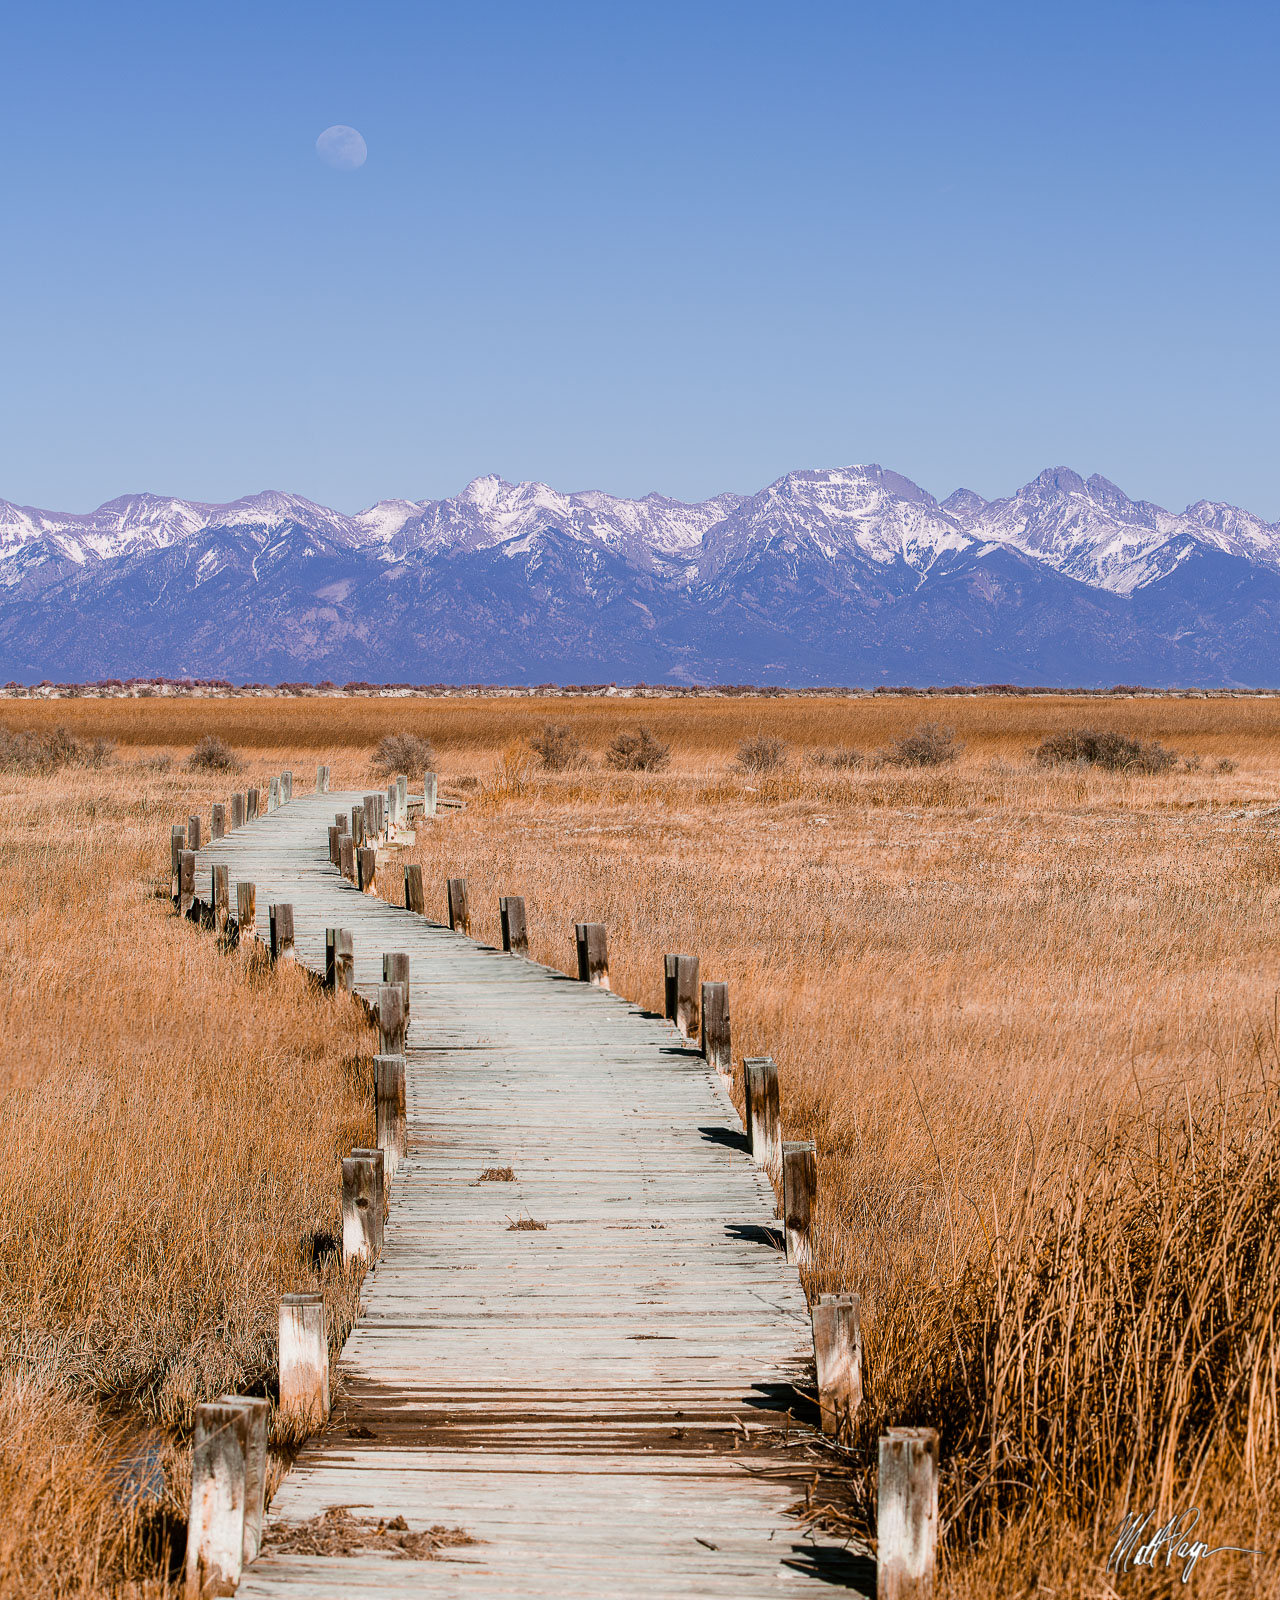 This bridge over marshy swap in the San Luis Valley leads the viewer to the towering Sangre de Cristo Mountains to the east as...